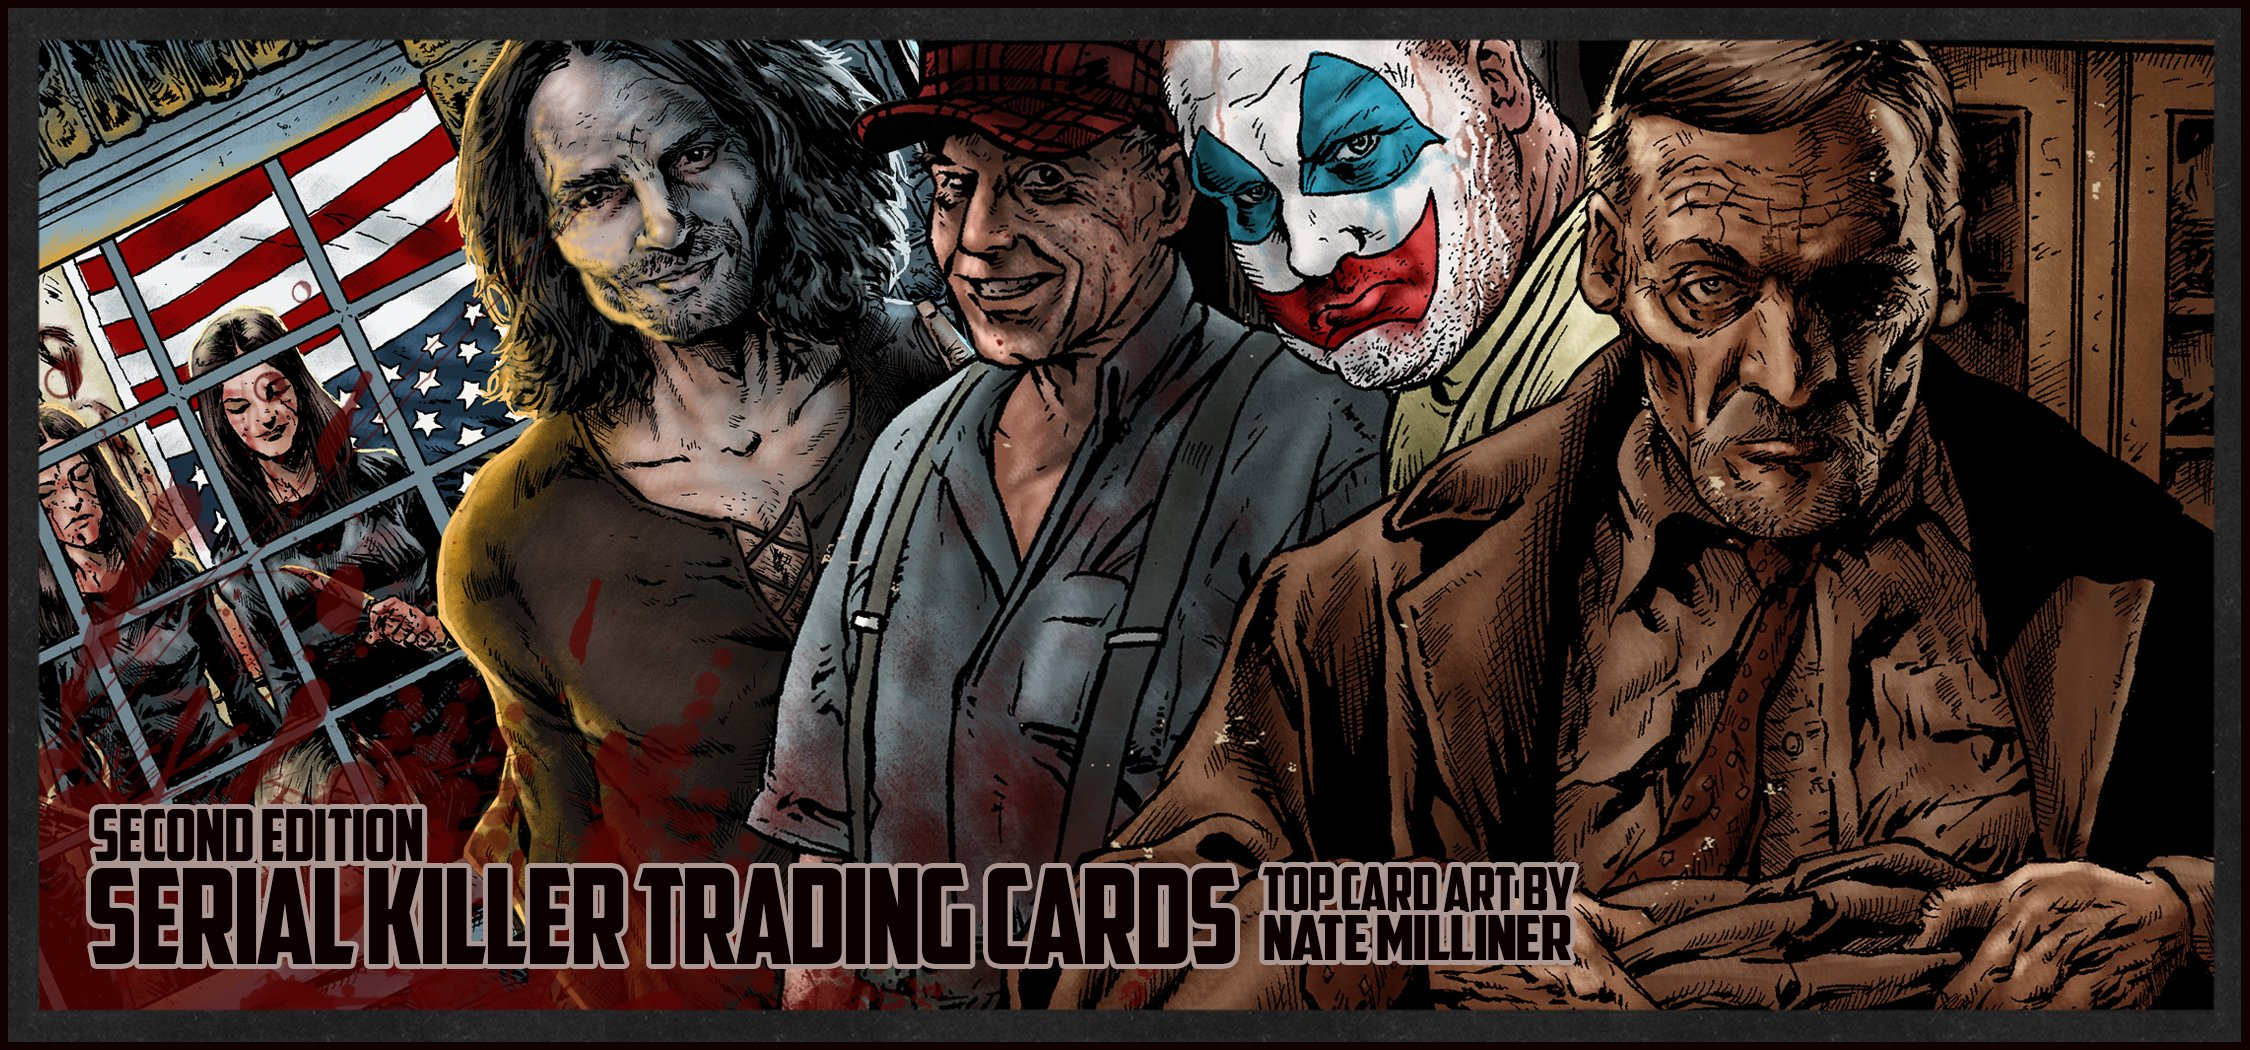 New Serial Killer Trading Cards Gilks And Saunders